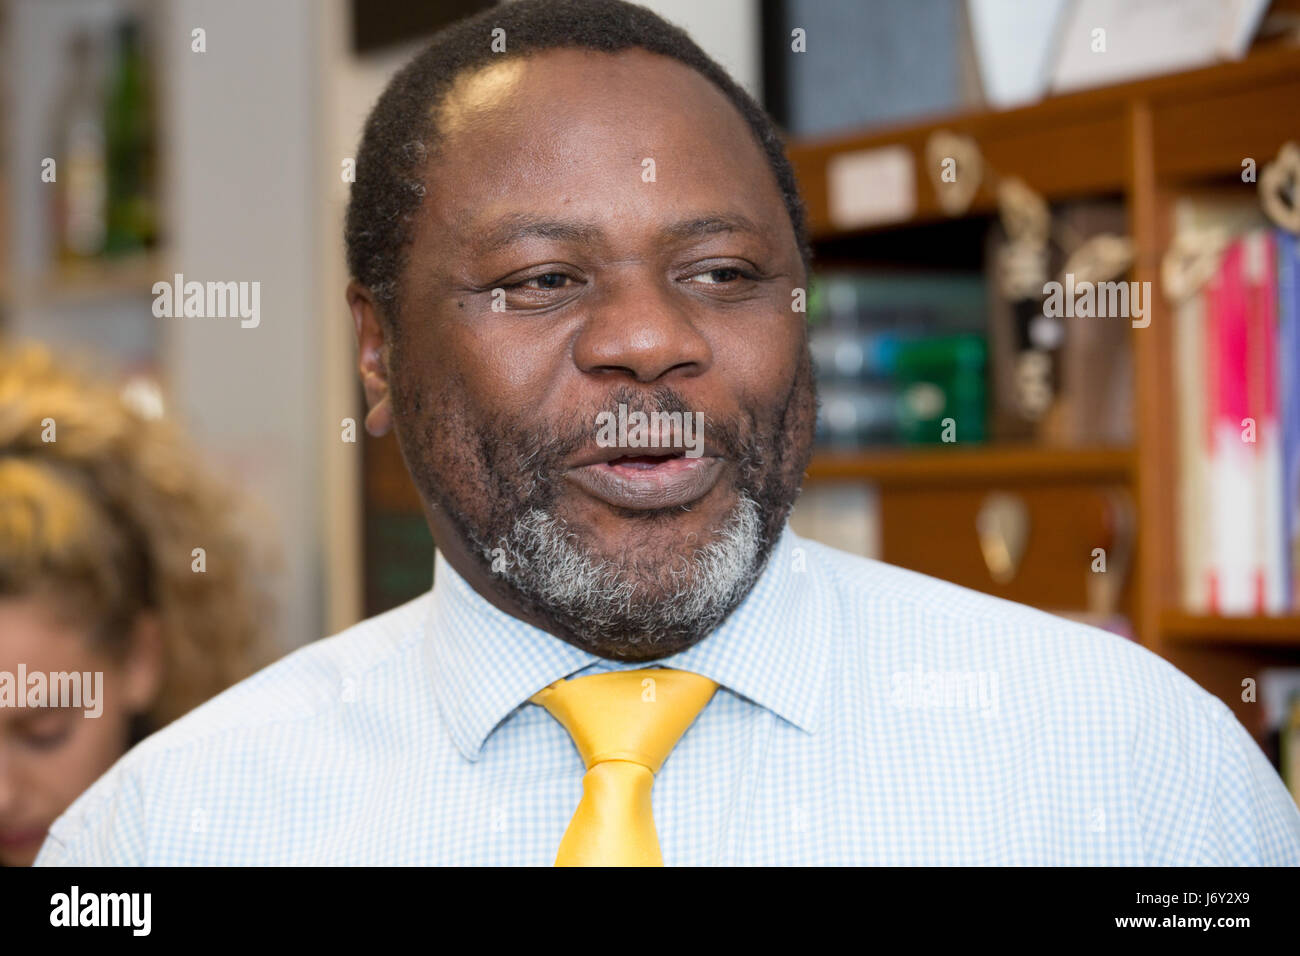 Ade Adeyeno, Liberal Democratic canidate for Solihull, West Midlands - Stock Image